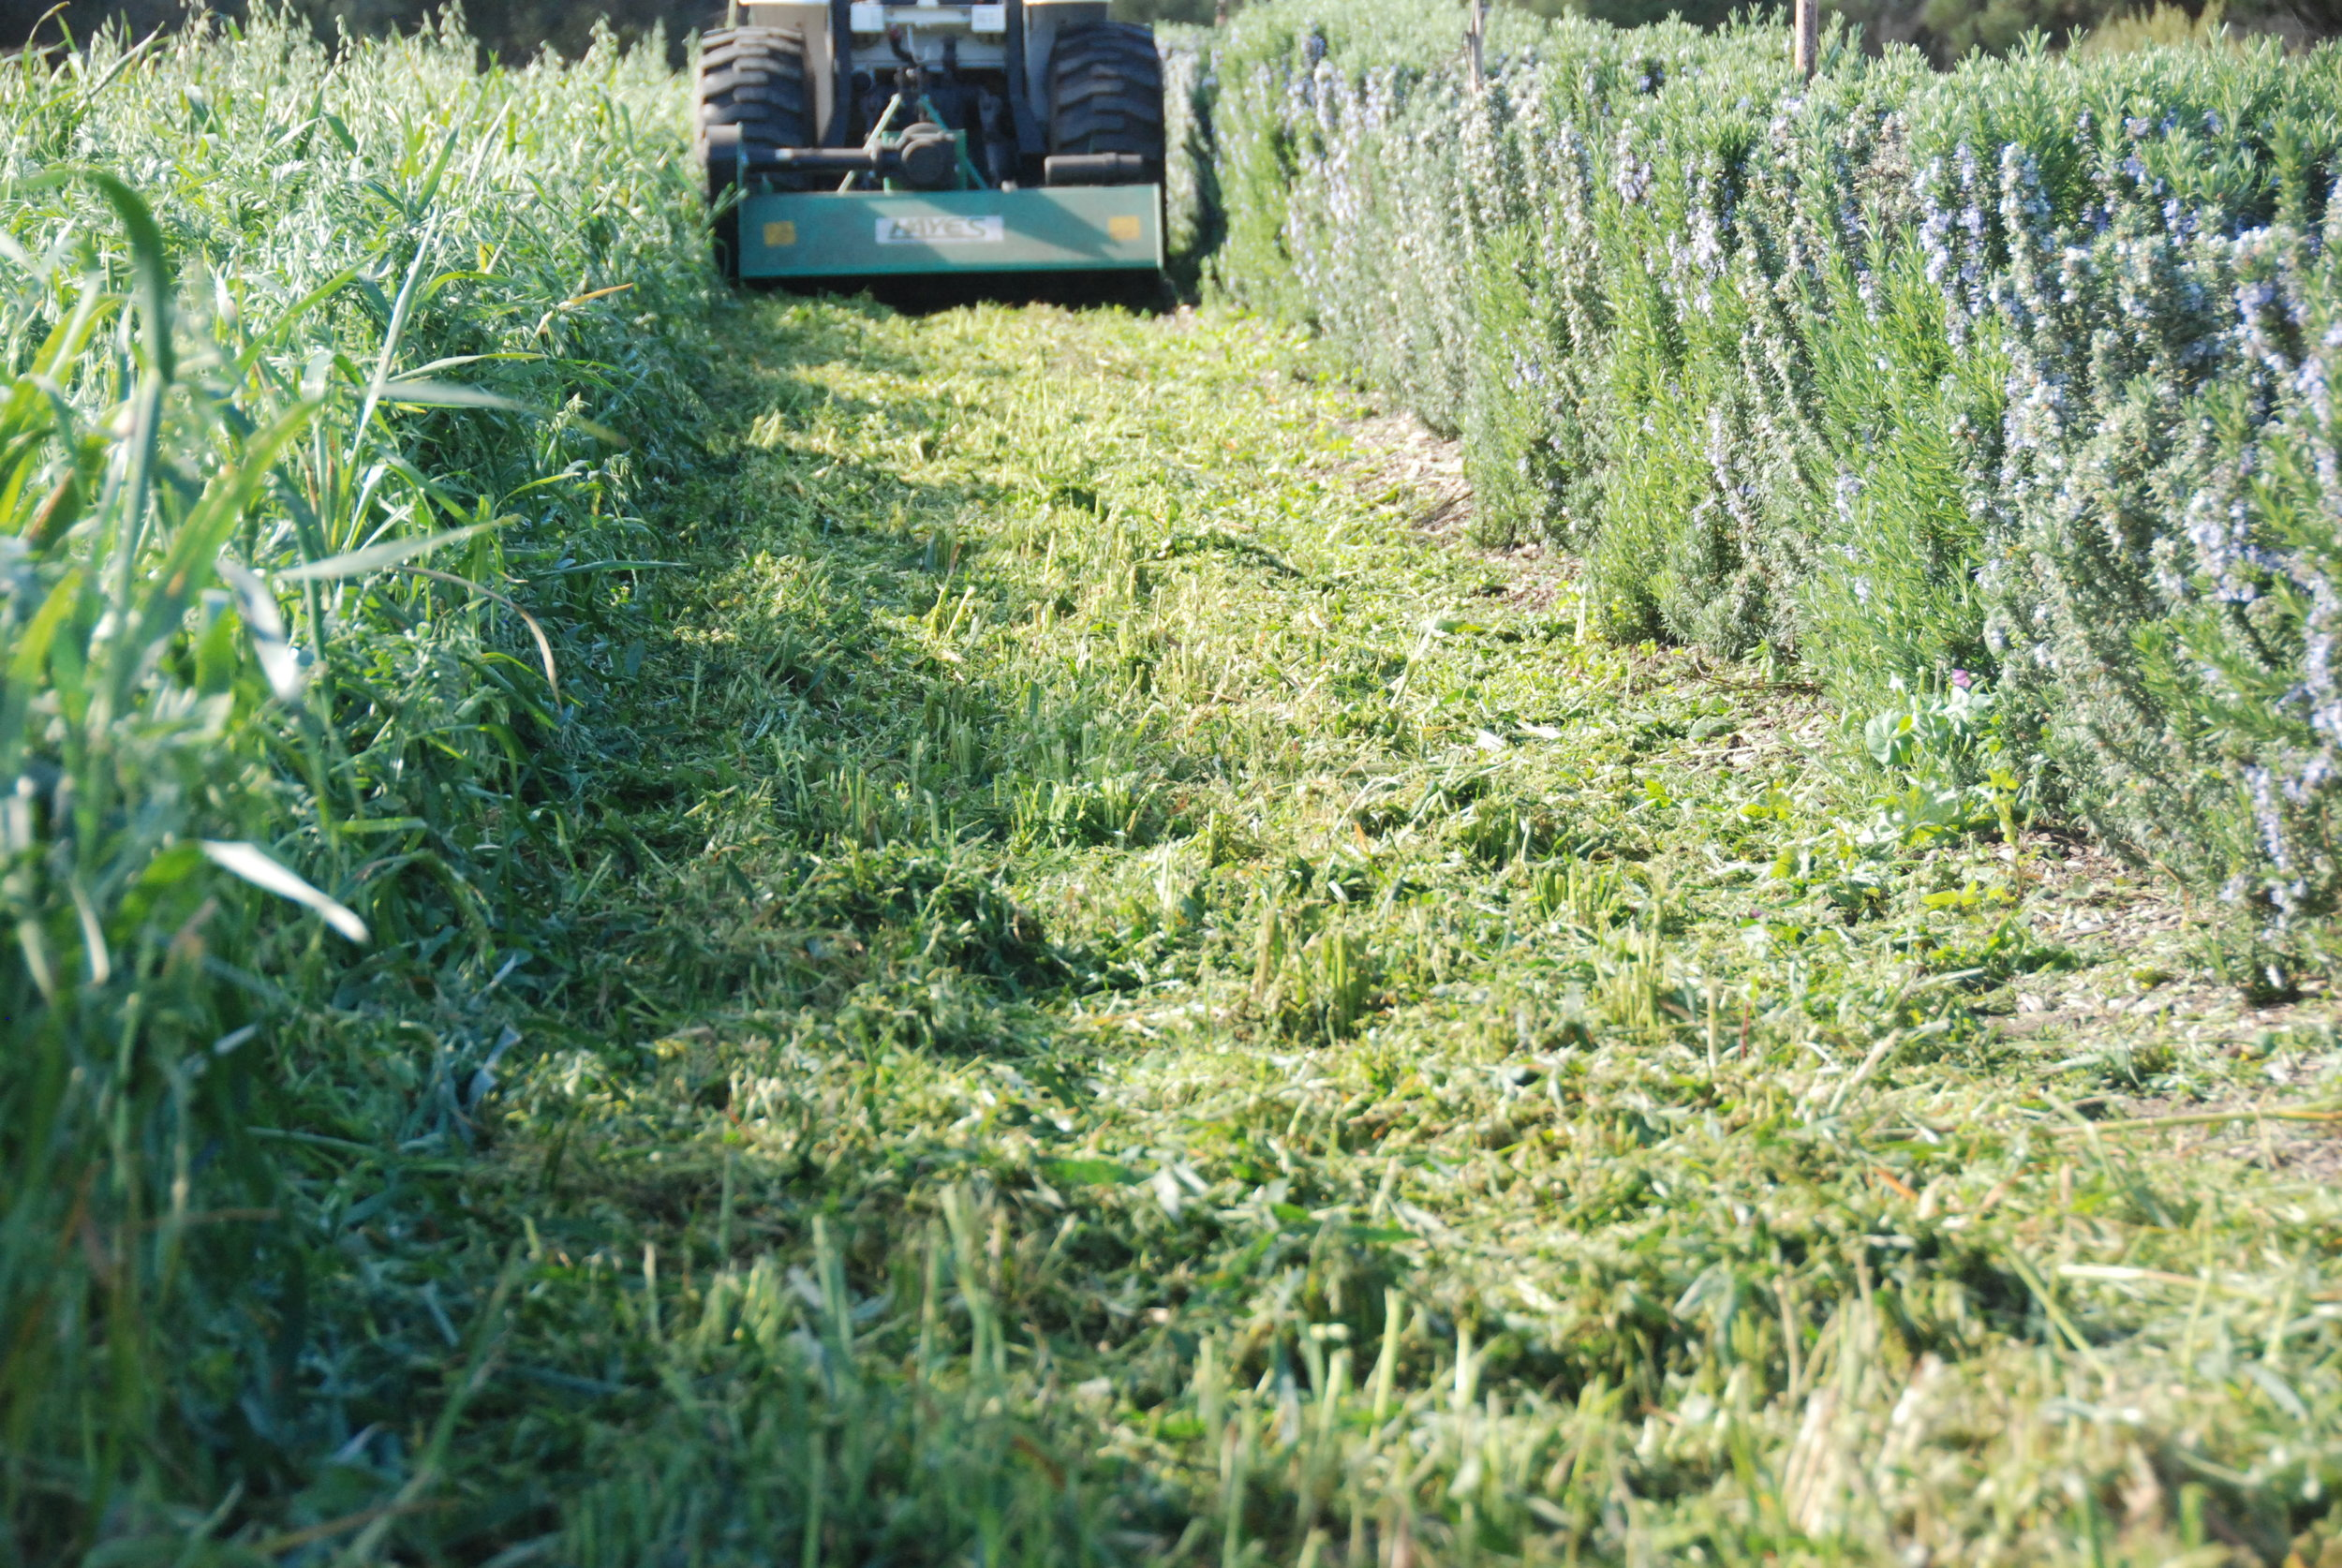 incorporating green manures in preparation for the planting of field tomatoes Sept 2018